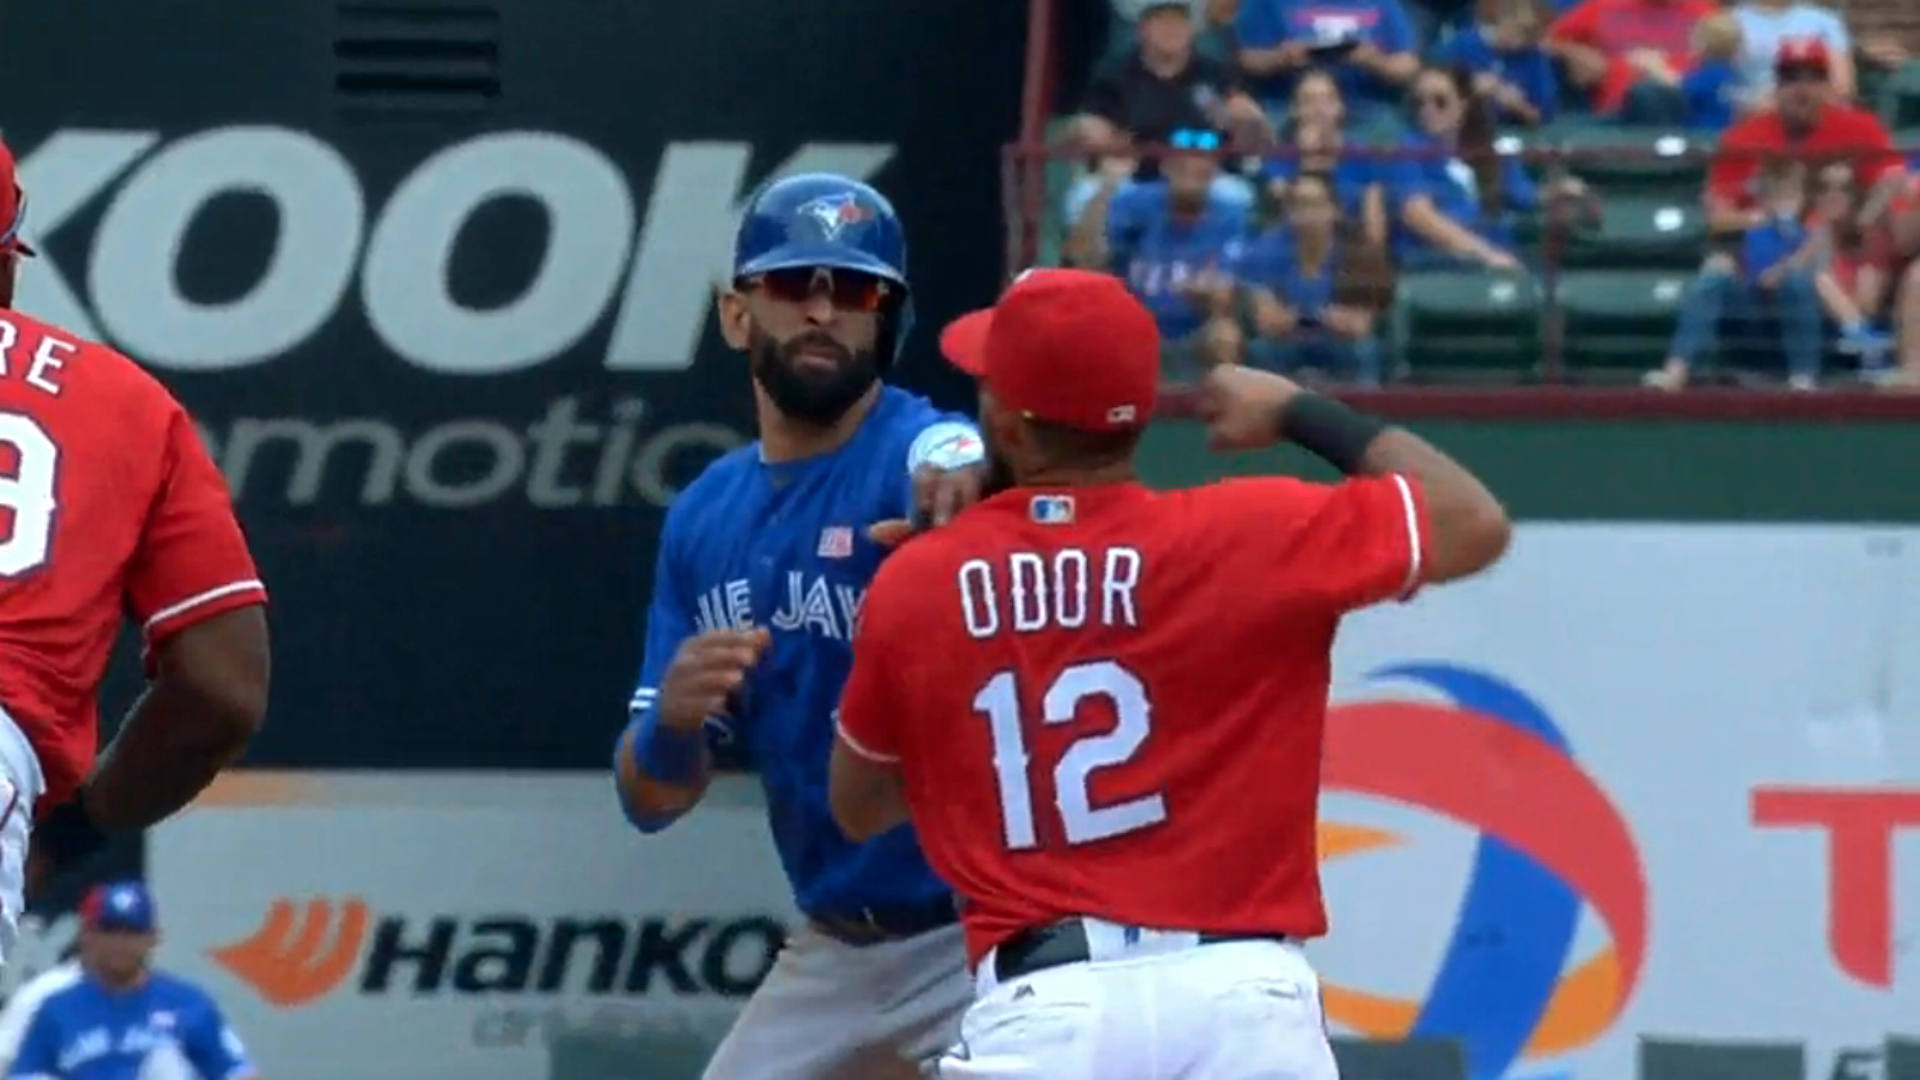 Rangers farewell graphic to Rougned Odor features infamous Jose Bautista punch